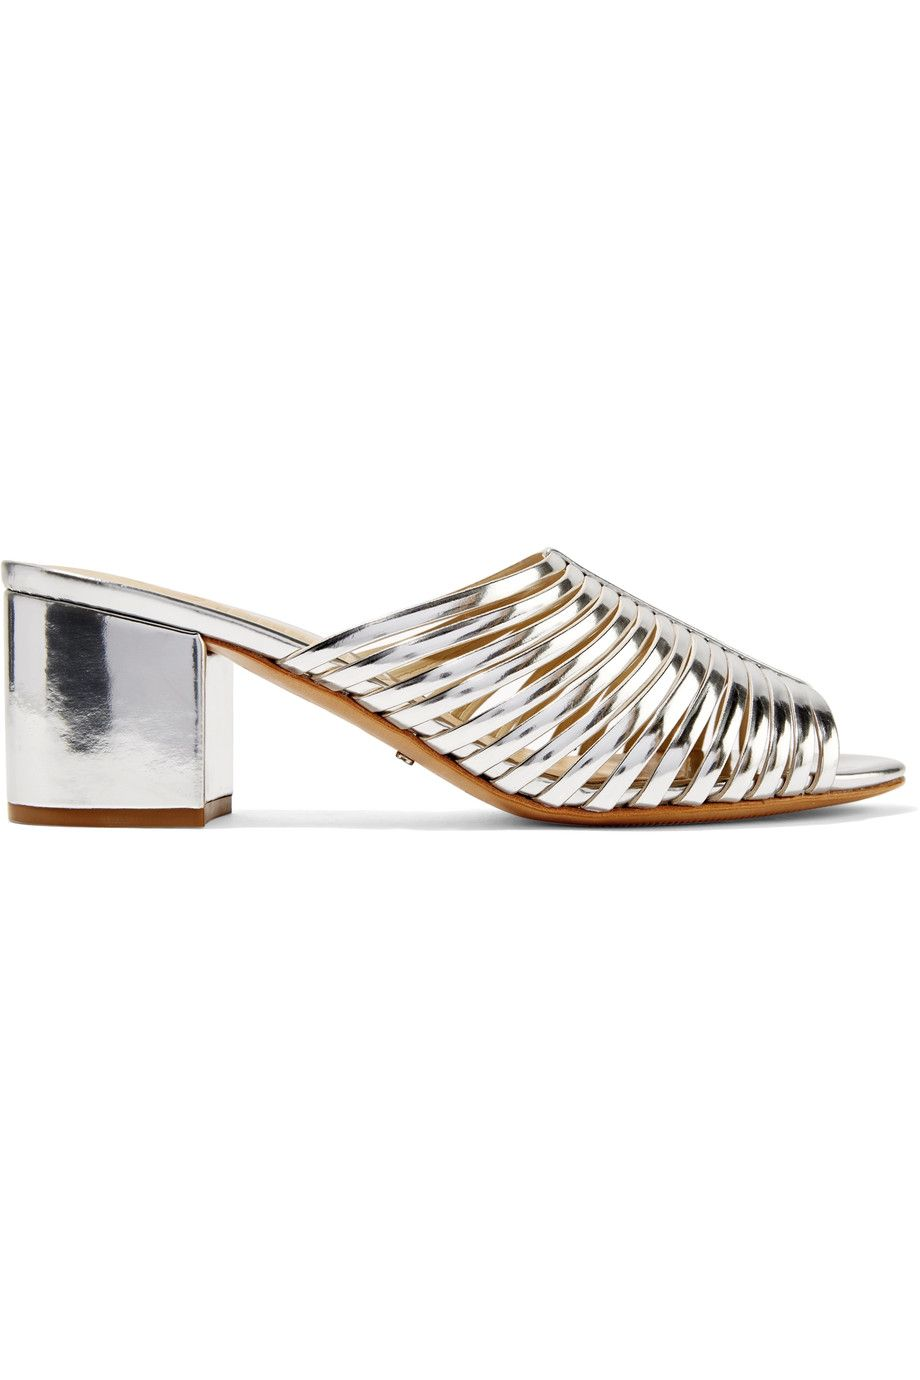 SCHUTZ Silver Cecilia cutout mirrored-leather mules - AVAILABLE HERE: http://rstyle.me/n/cpymwsbcukx